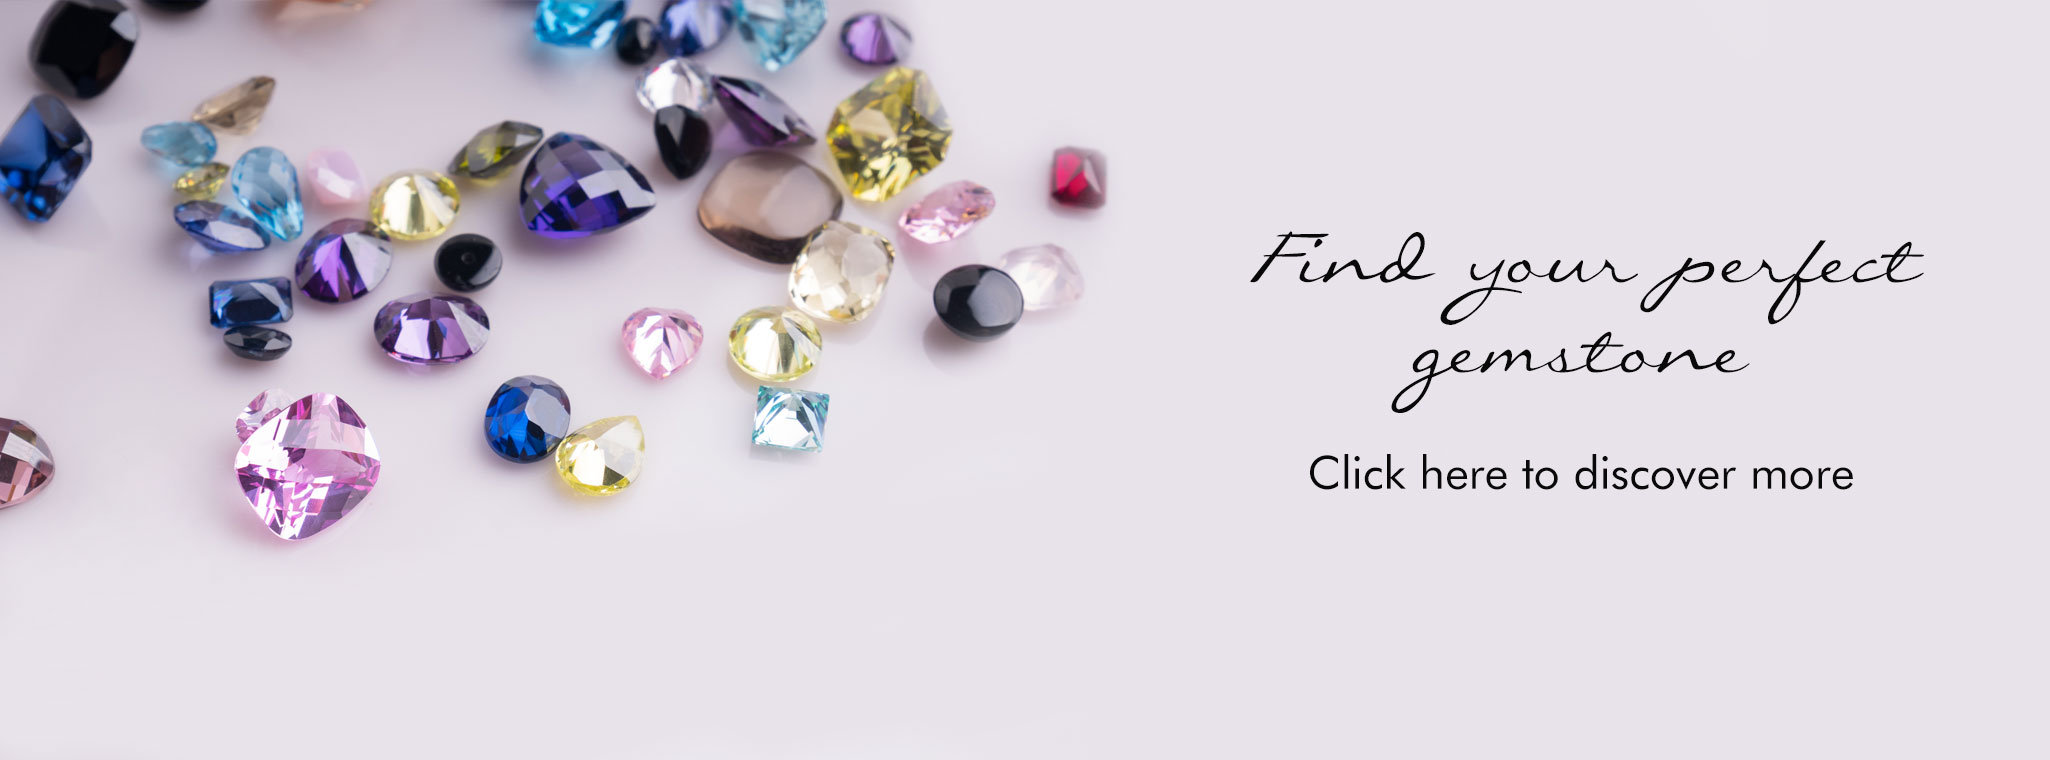 Find your perfect gemstone, Drakes Jewellers, Plymouth, Gemstones, Jewellery